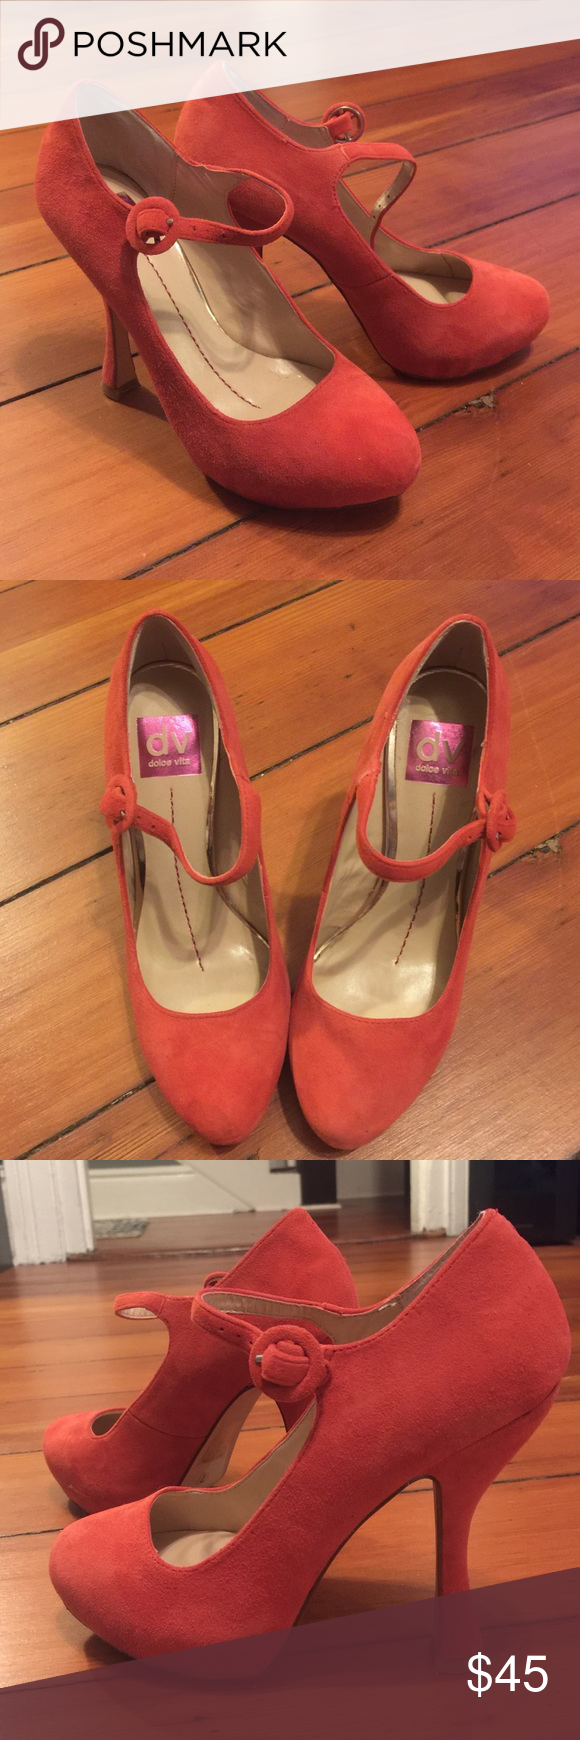 Dolce Vita Mary Jane suede platforms! These shoes are adorable and unique. Just a touch too small for me.  They are red suede with a hidden platform in front and Mary Jane style.  Only worn once, but as you can see the one time involved a good amount of walking.  Would be super comfortable if you are a true size 7 or even a large 6.5. Dolce Vita Shoes Heels